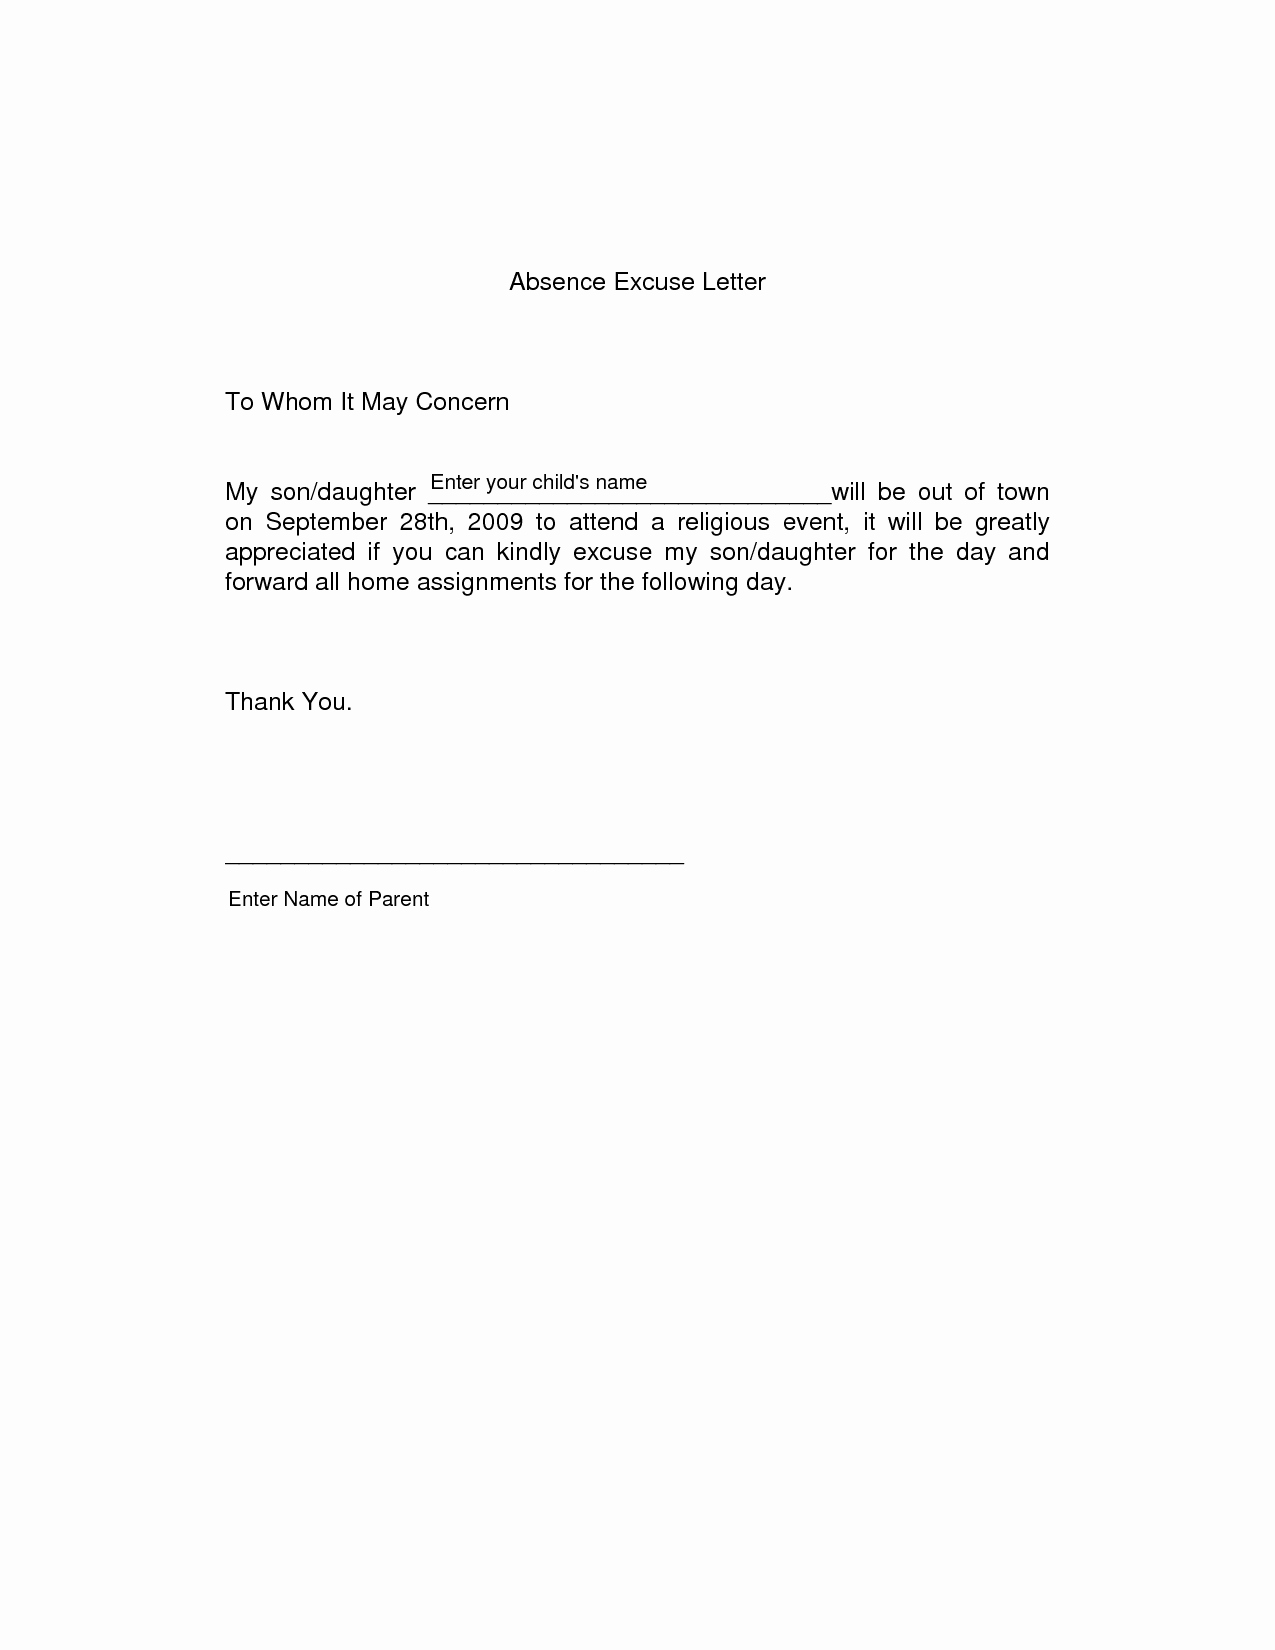 Absent From School Letter Sample New format Excuse Letter for Being Absent Best Template